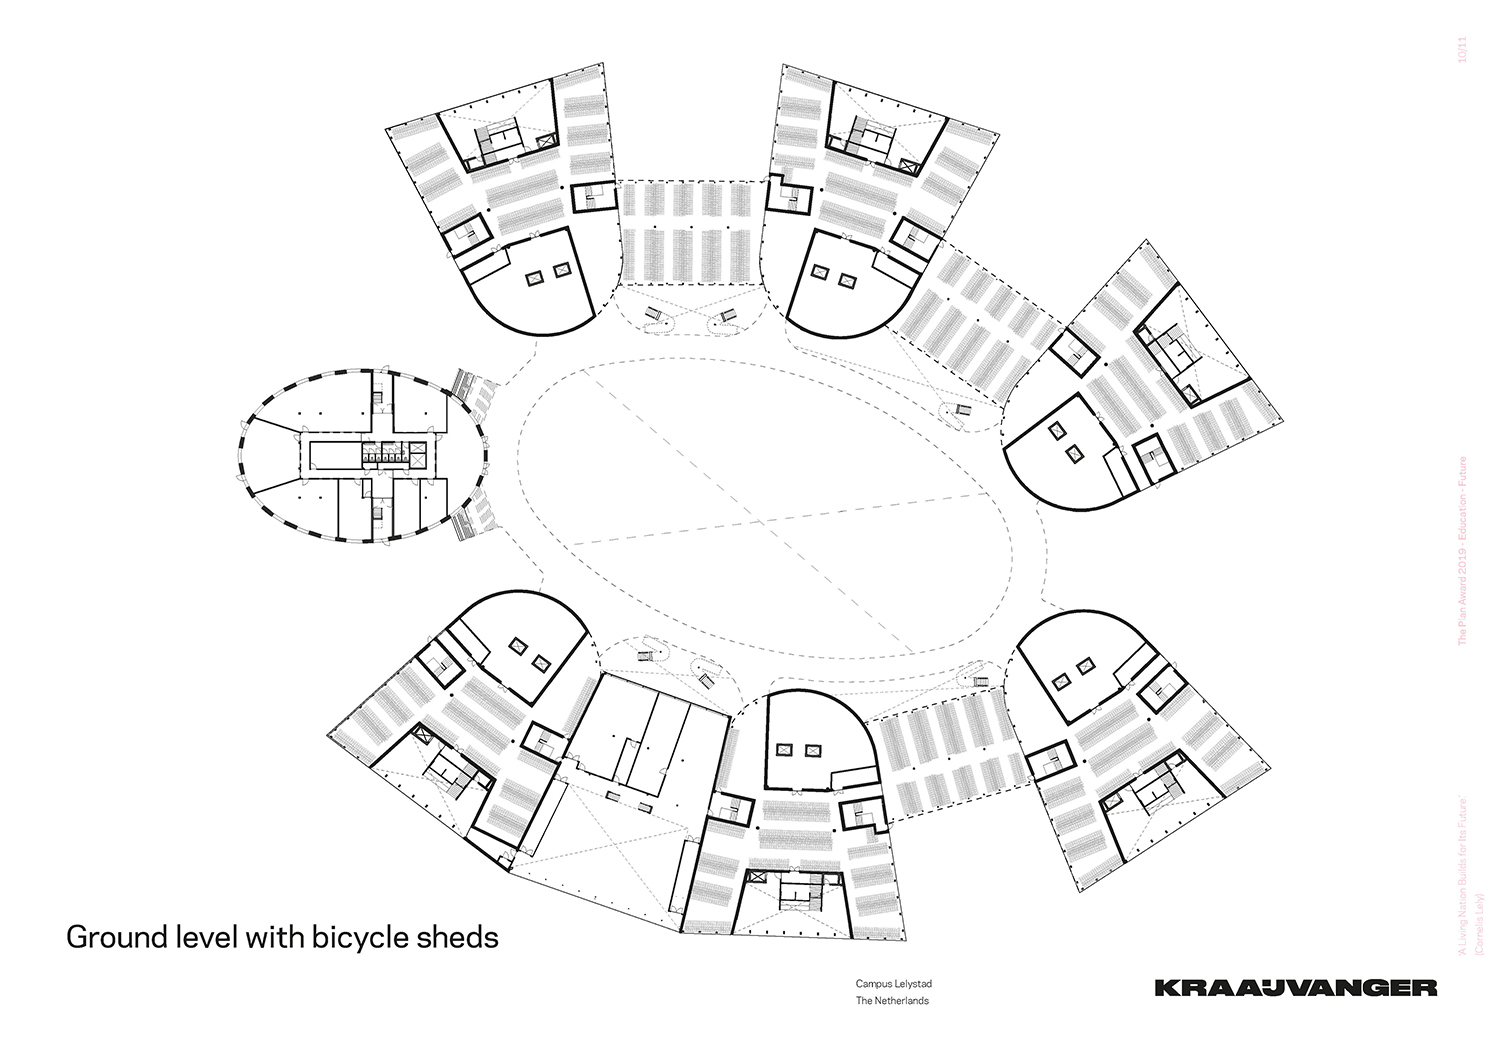 Ground level with bicycle sheds © Kraaijvanger Architects}